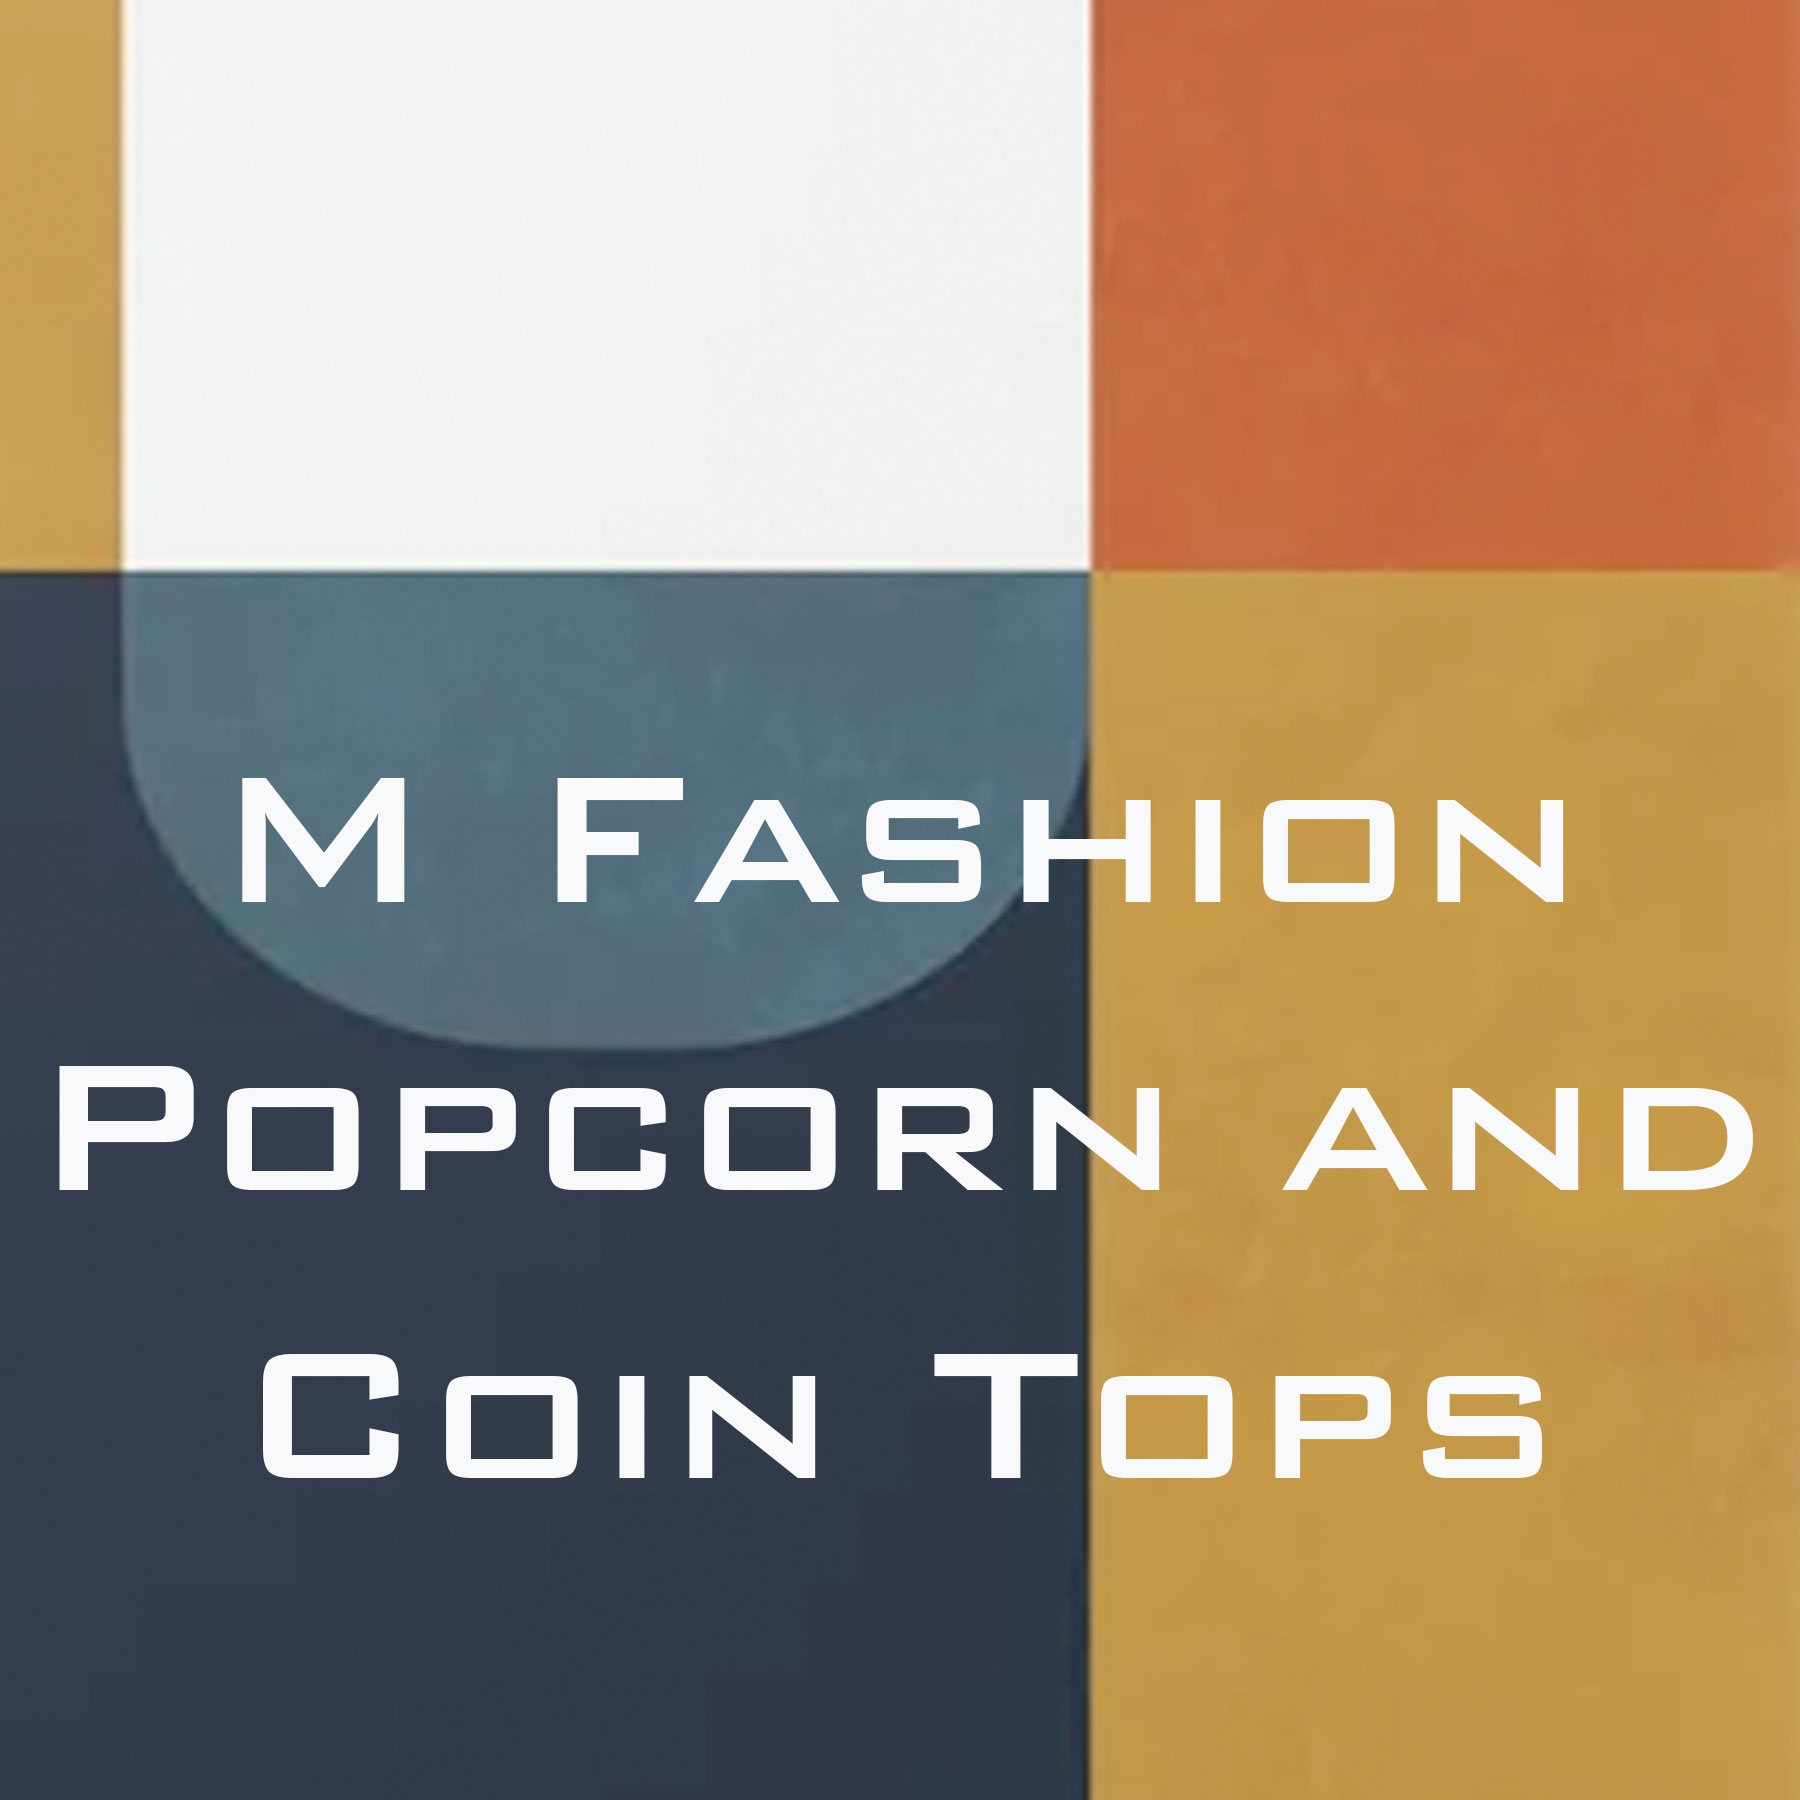 Wholesale Popcorn Tops